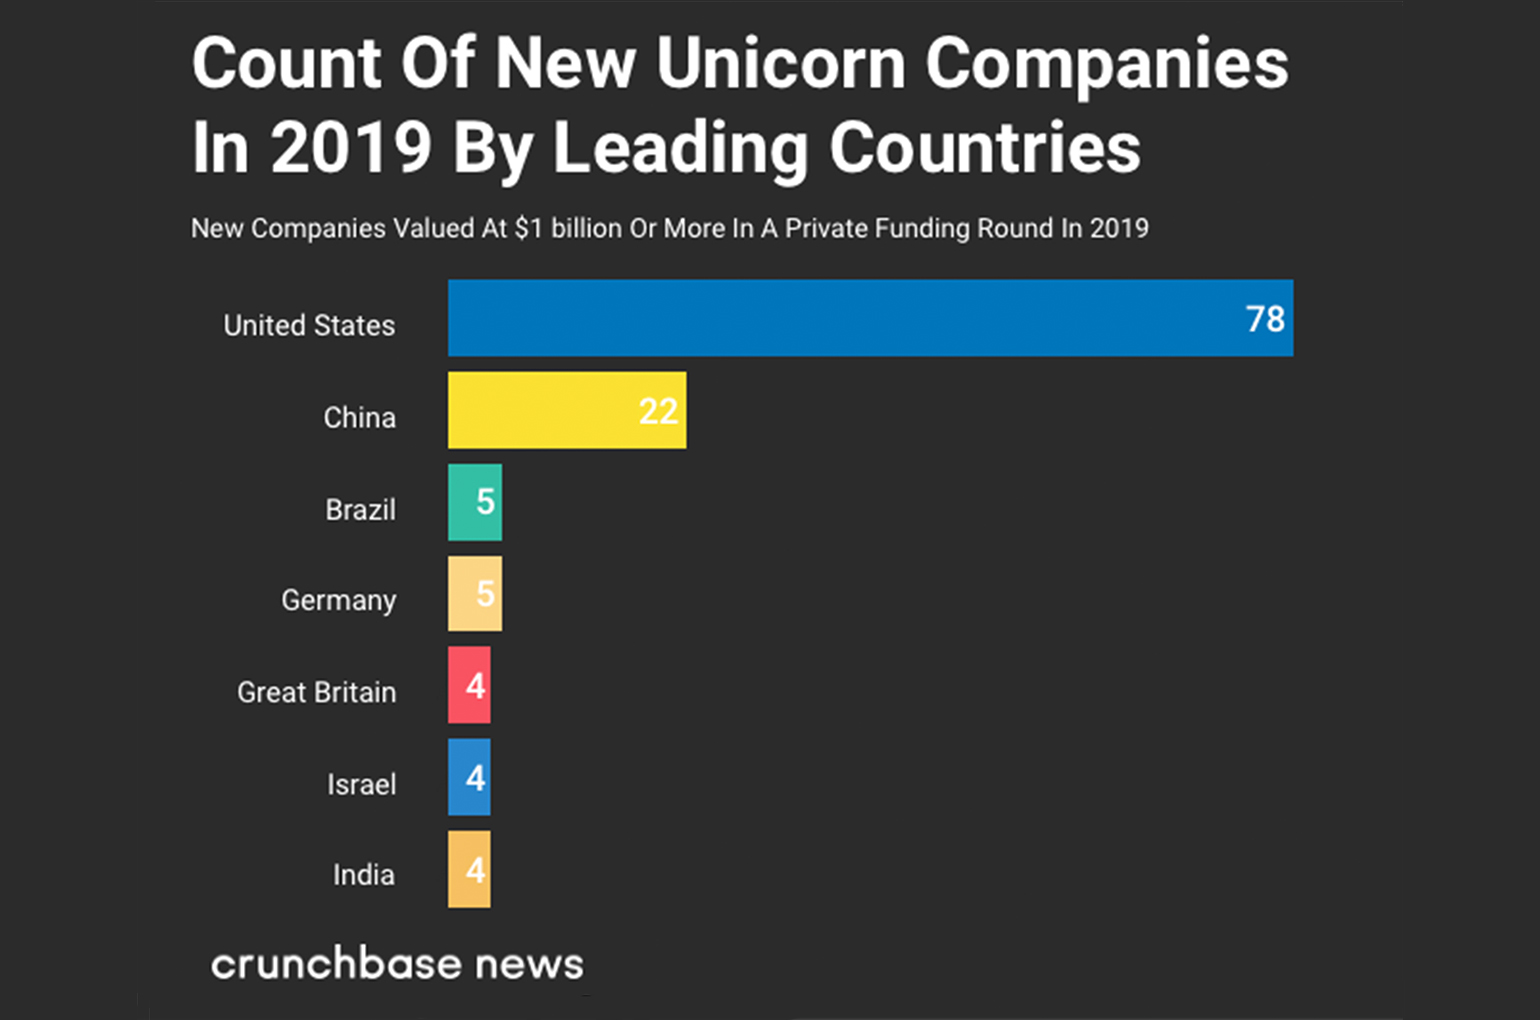 The Growth Of New Unicorns In 2019 Is Higher Than Previous Years-Body Image 017